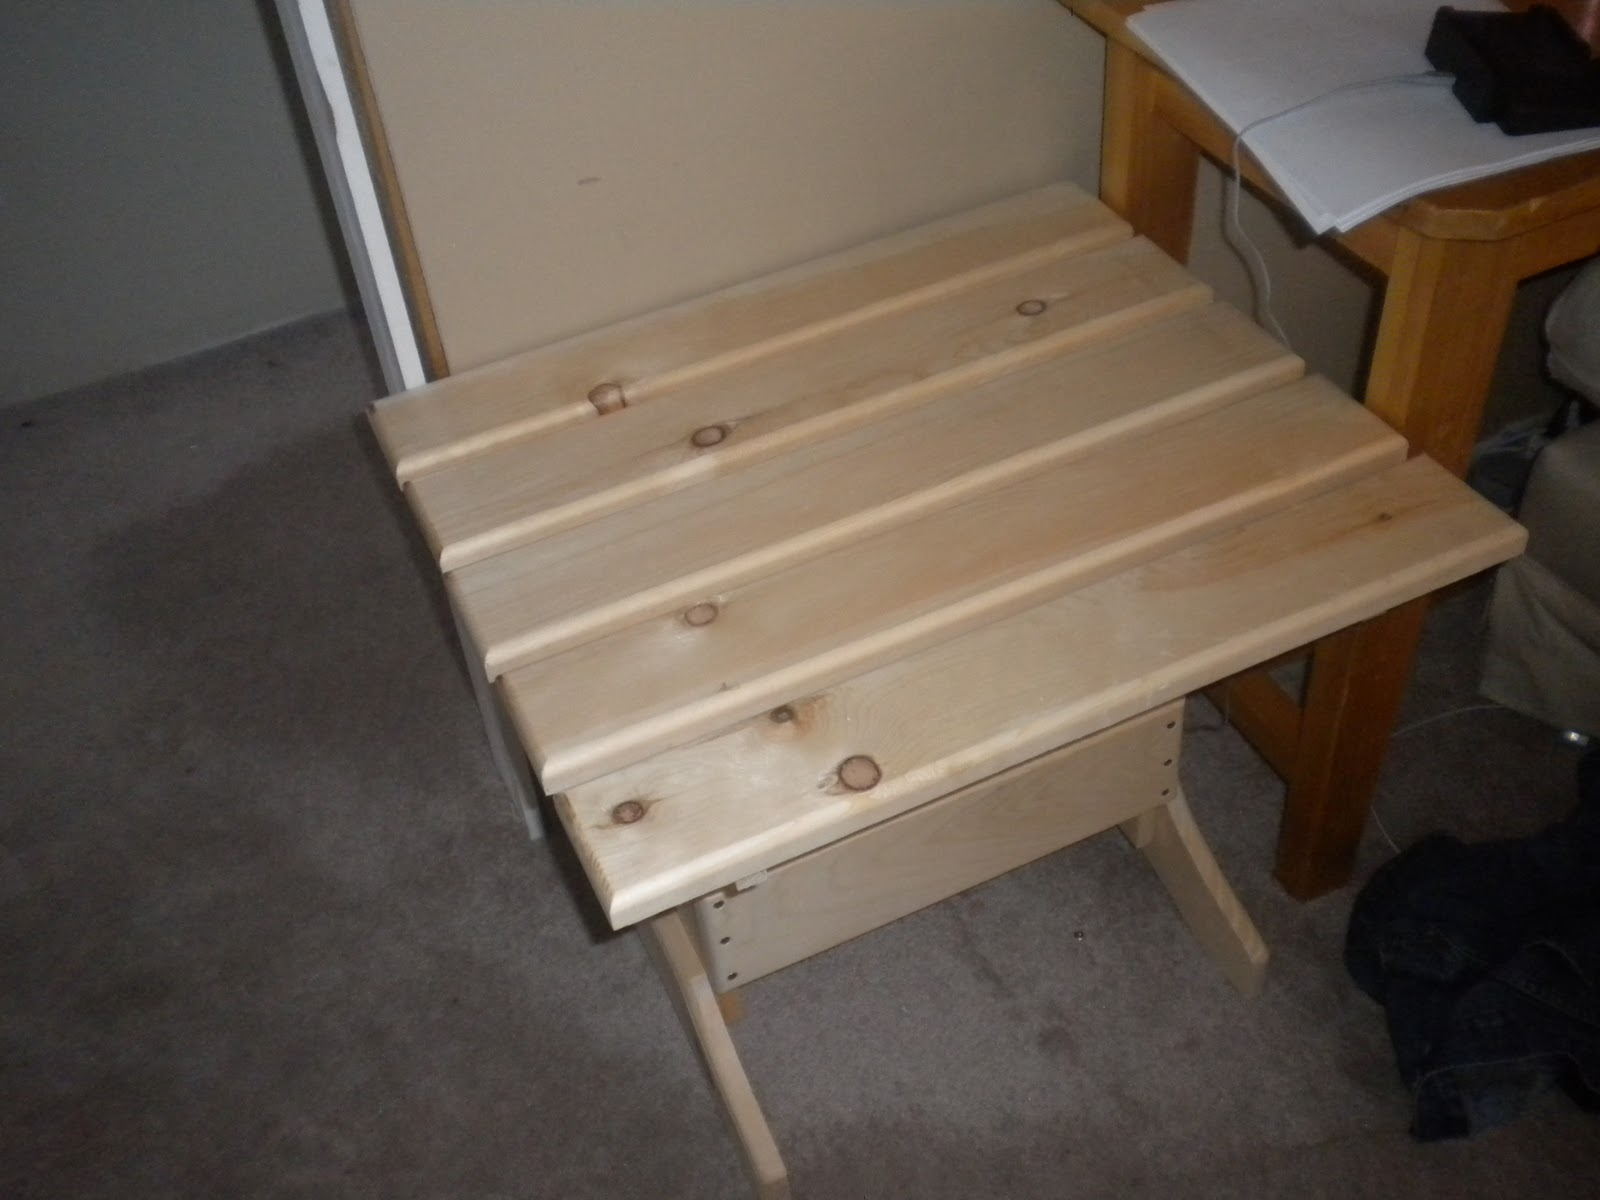 Best Woodworking Plan Site Woodshop Project Ideas For High School